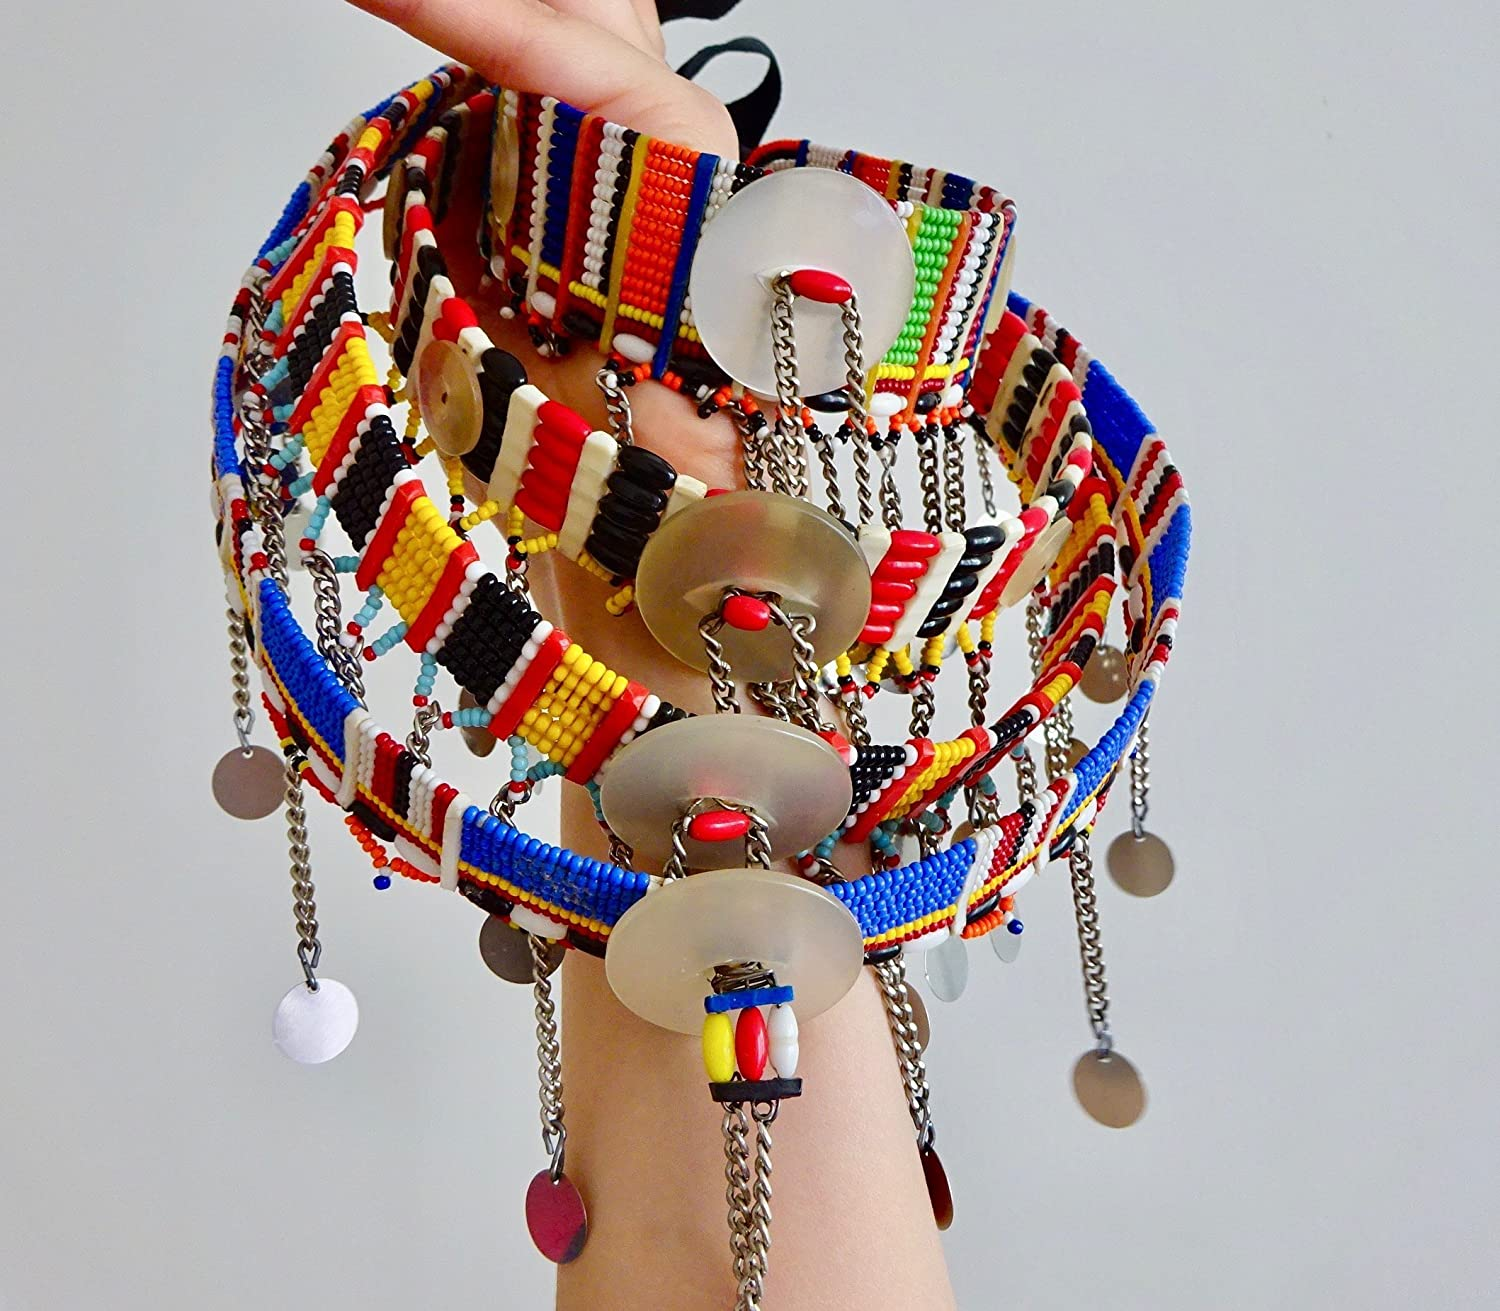 Jungle Necklace Ethnic Necklace Tribal Necklace Statement Necklace African Necklace Collier Africaine African Jewelry Maasai Necklace